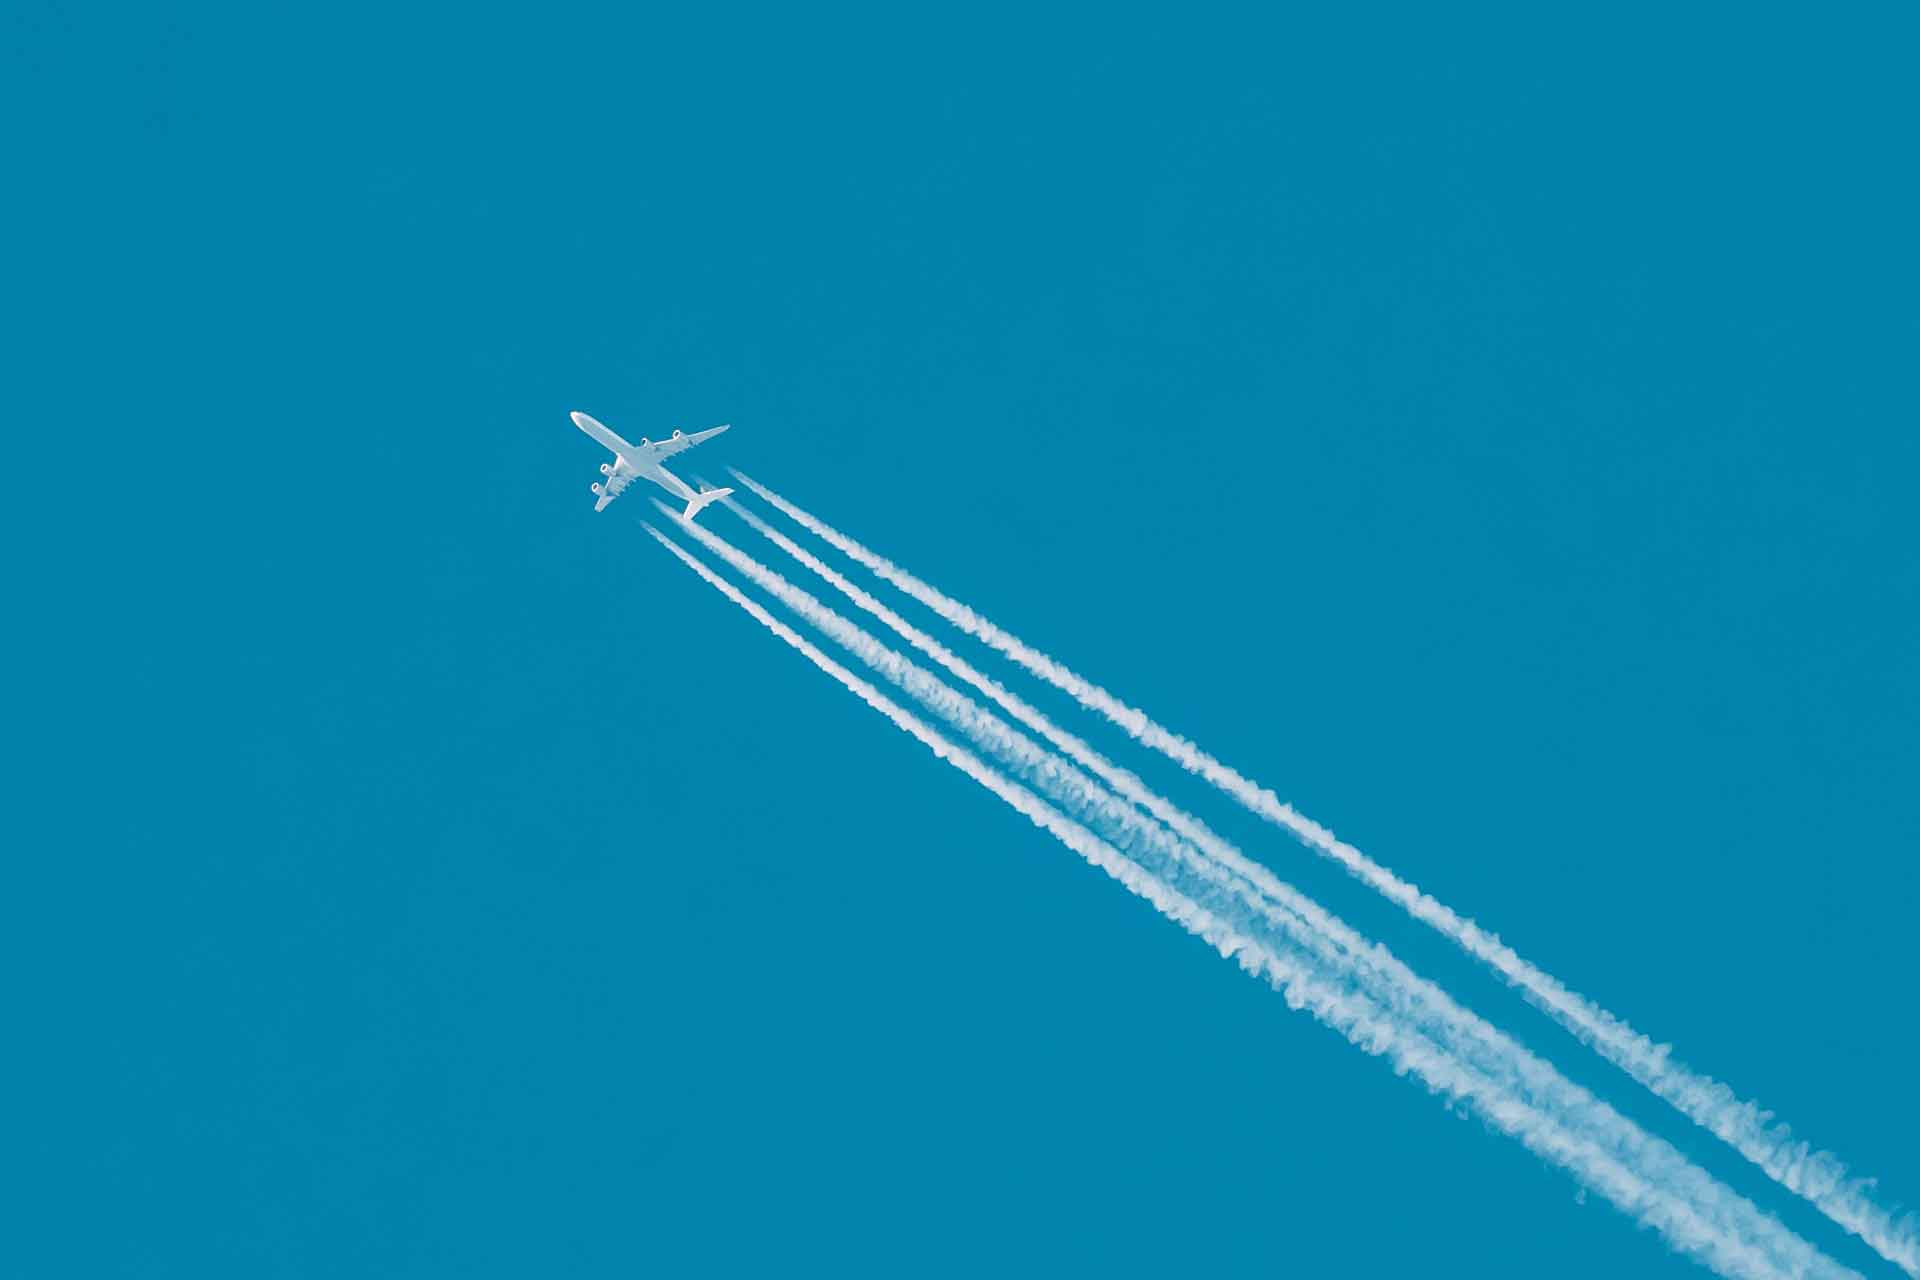 airplane-in-the-sky-with-plane